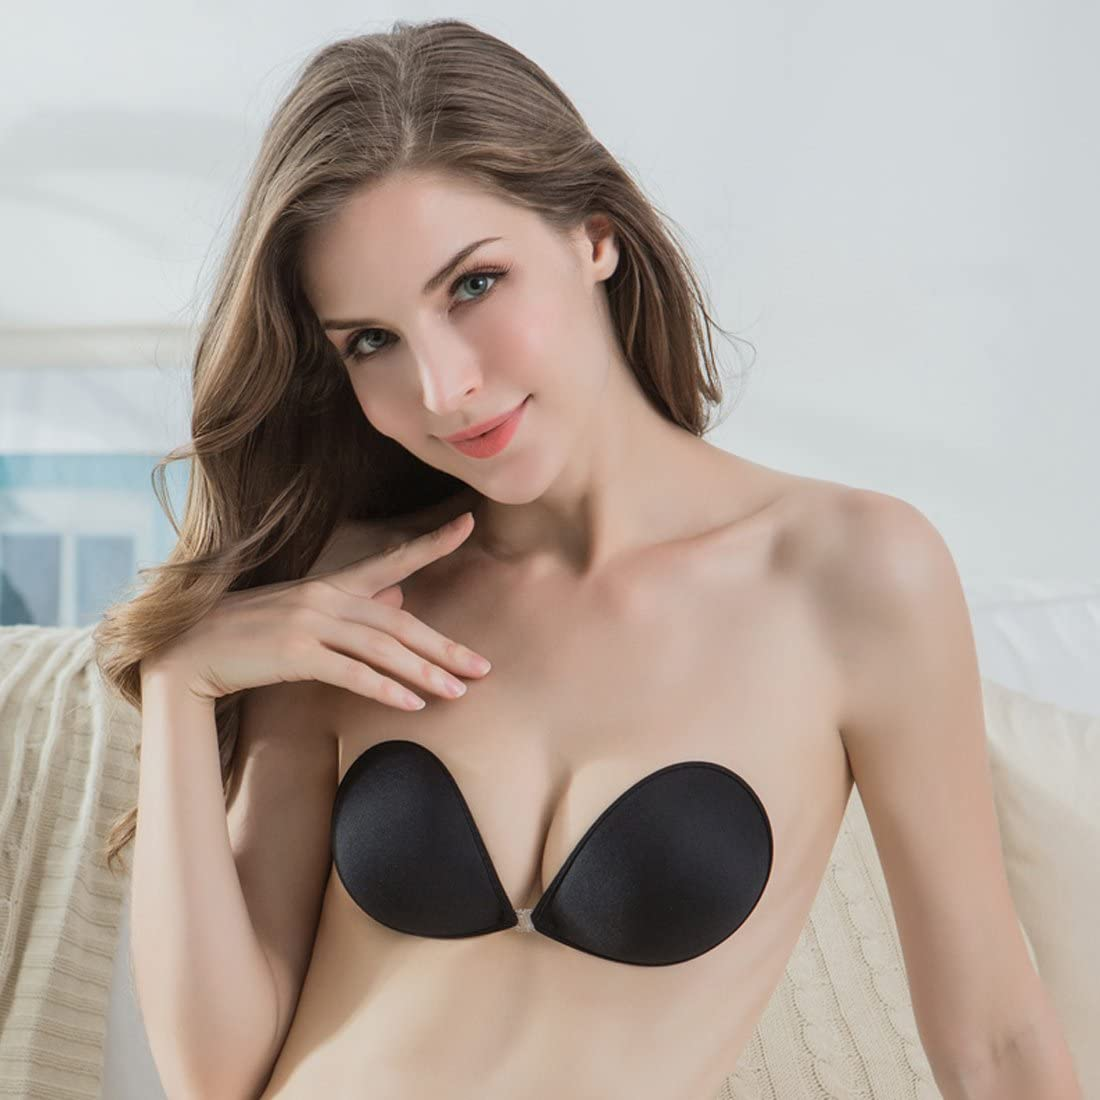 Hioffer Self Adhesive Backless Bralette Soft Invisible Push Up Bra Lingerie Lift Bras for Women